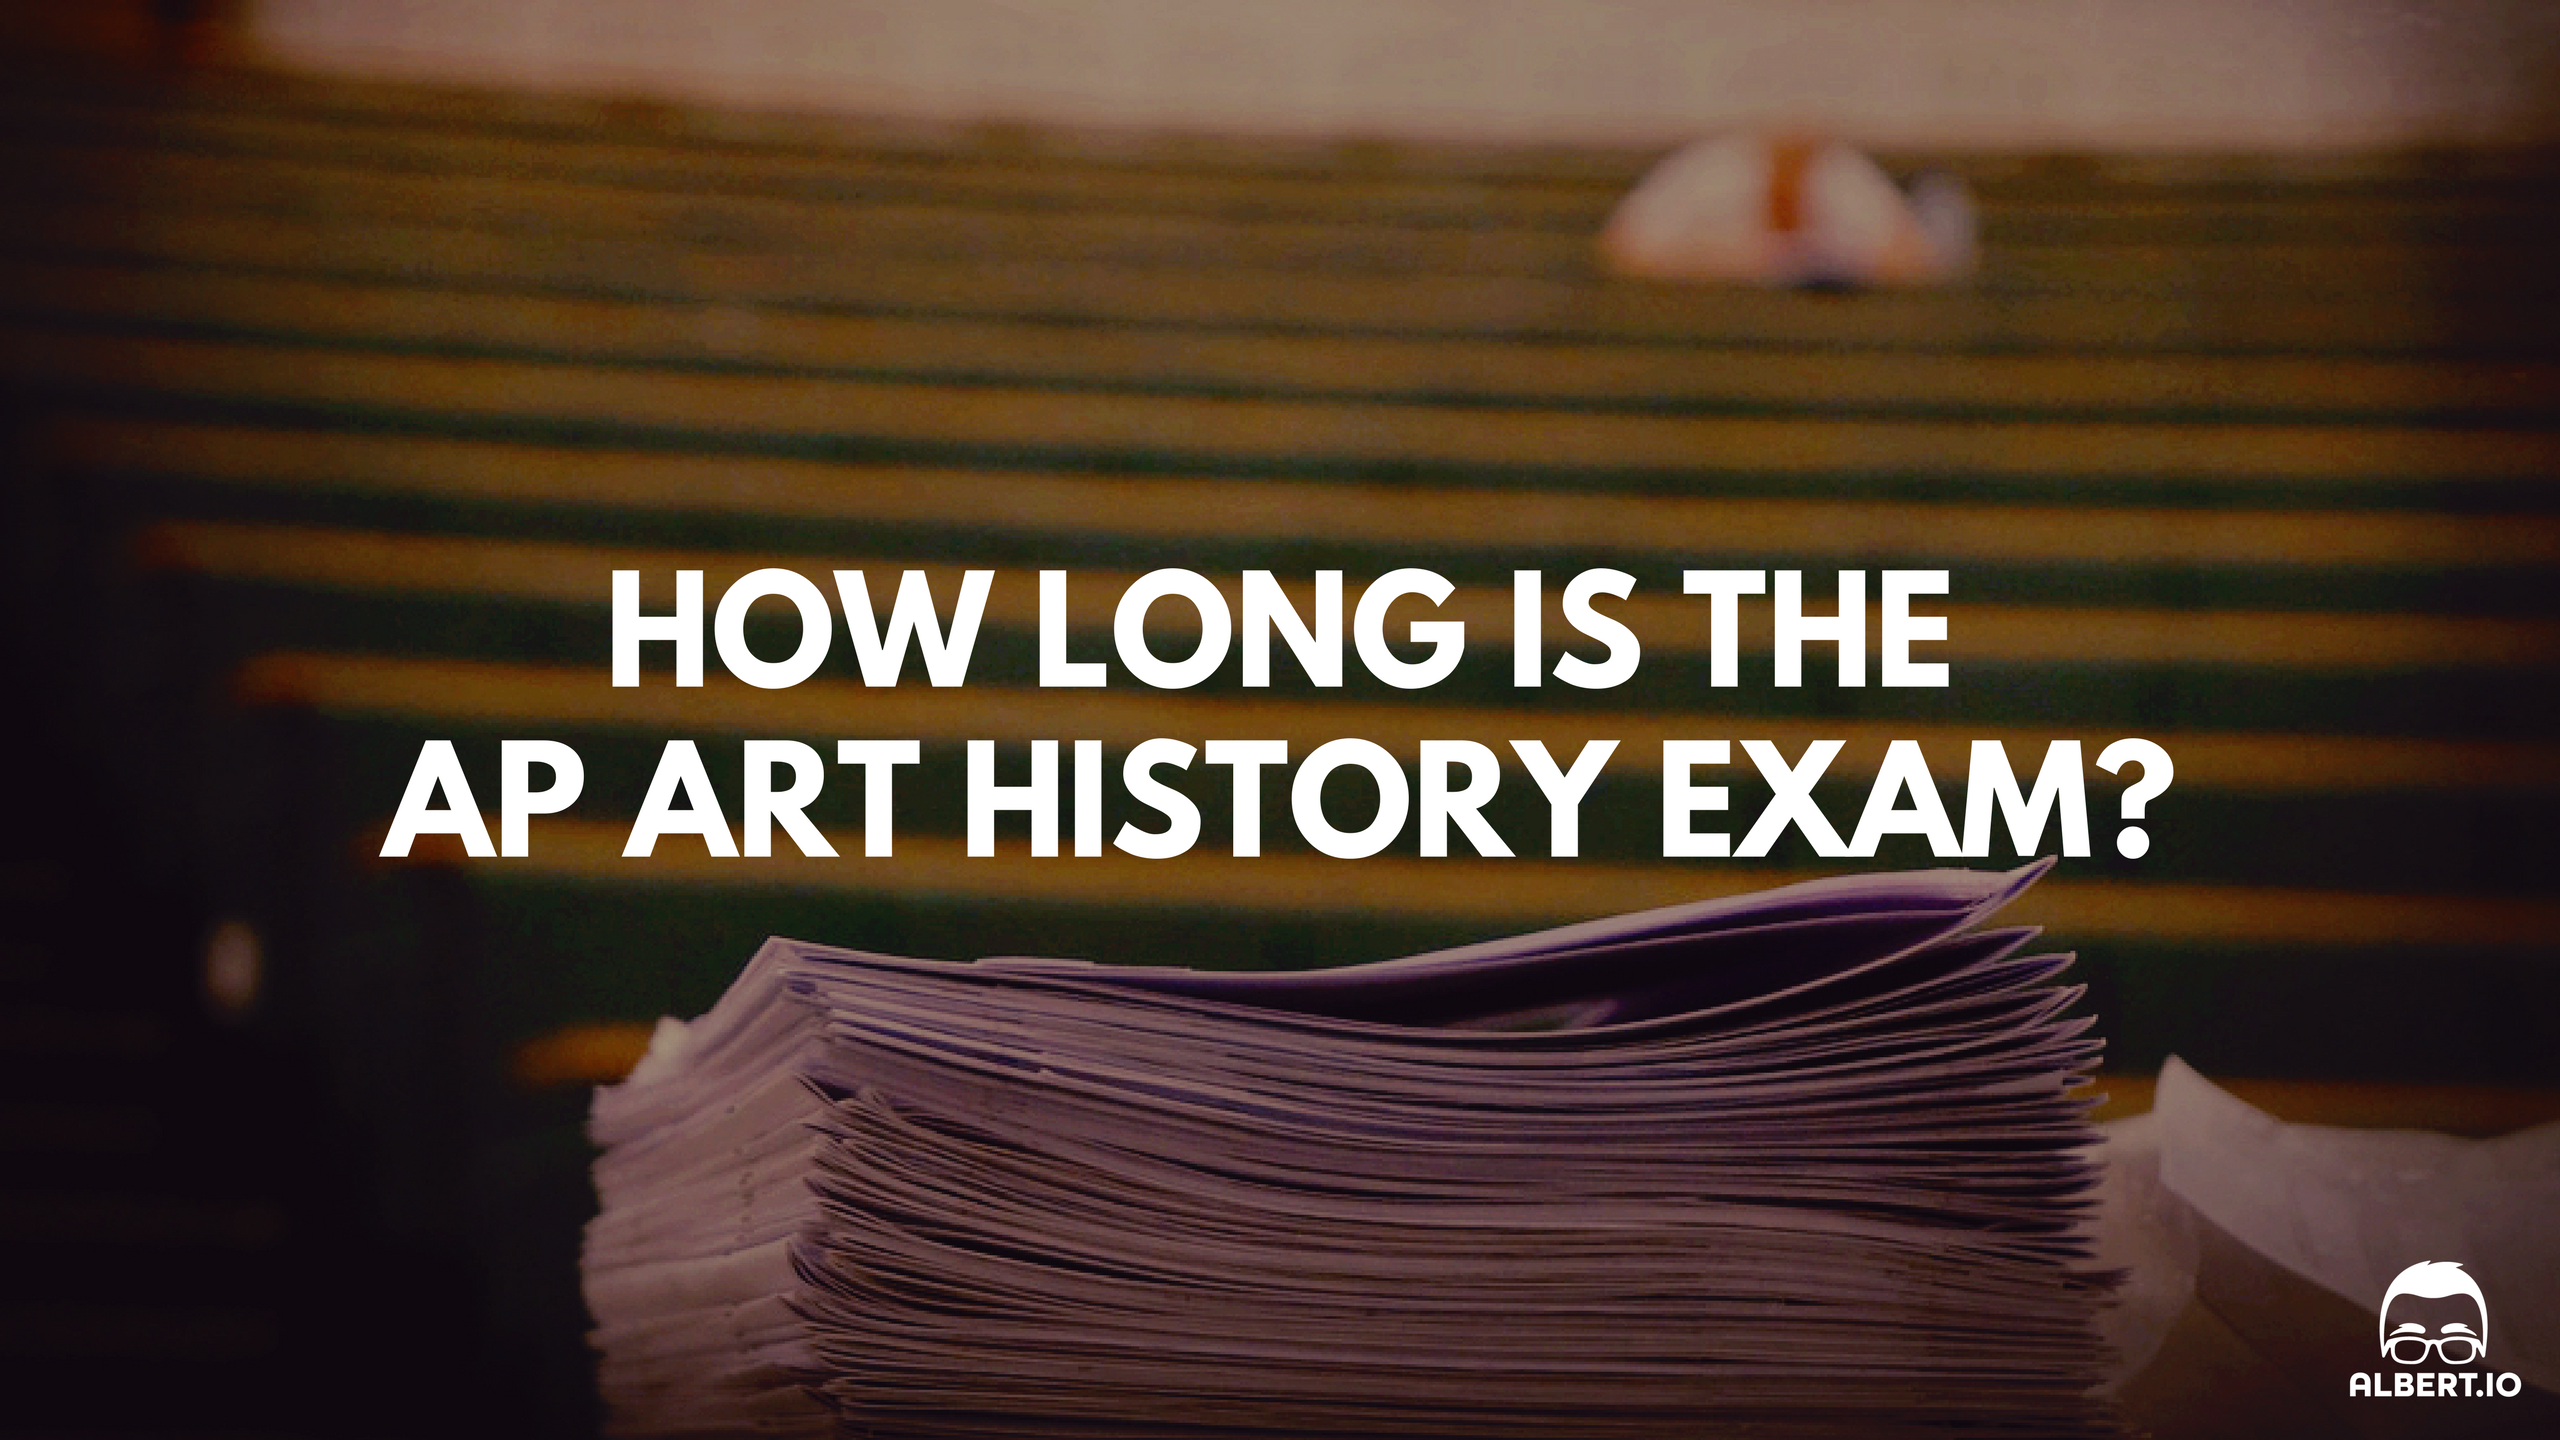 How Long is the AP Art History Exam